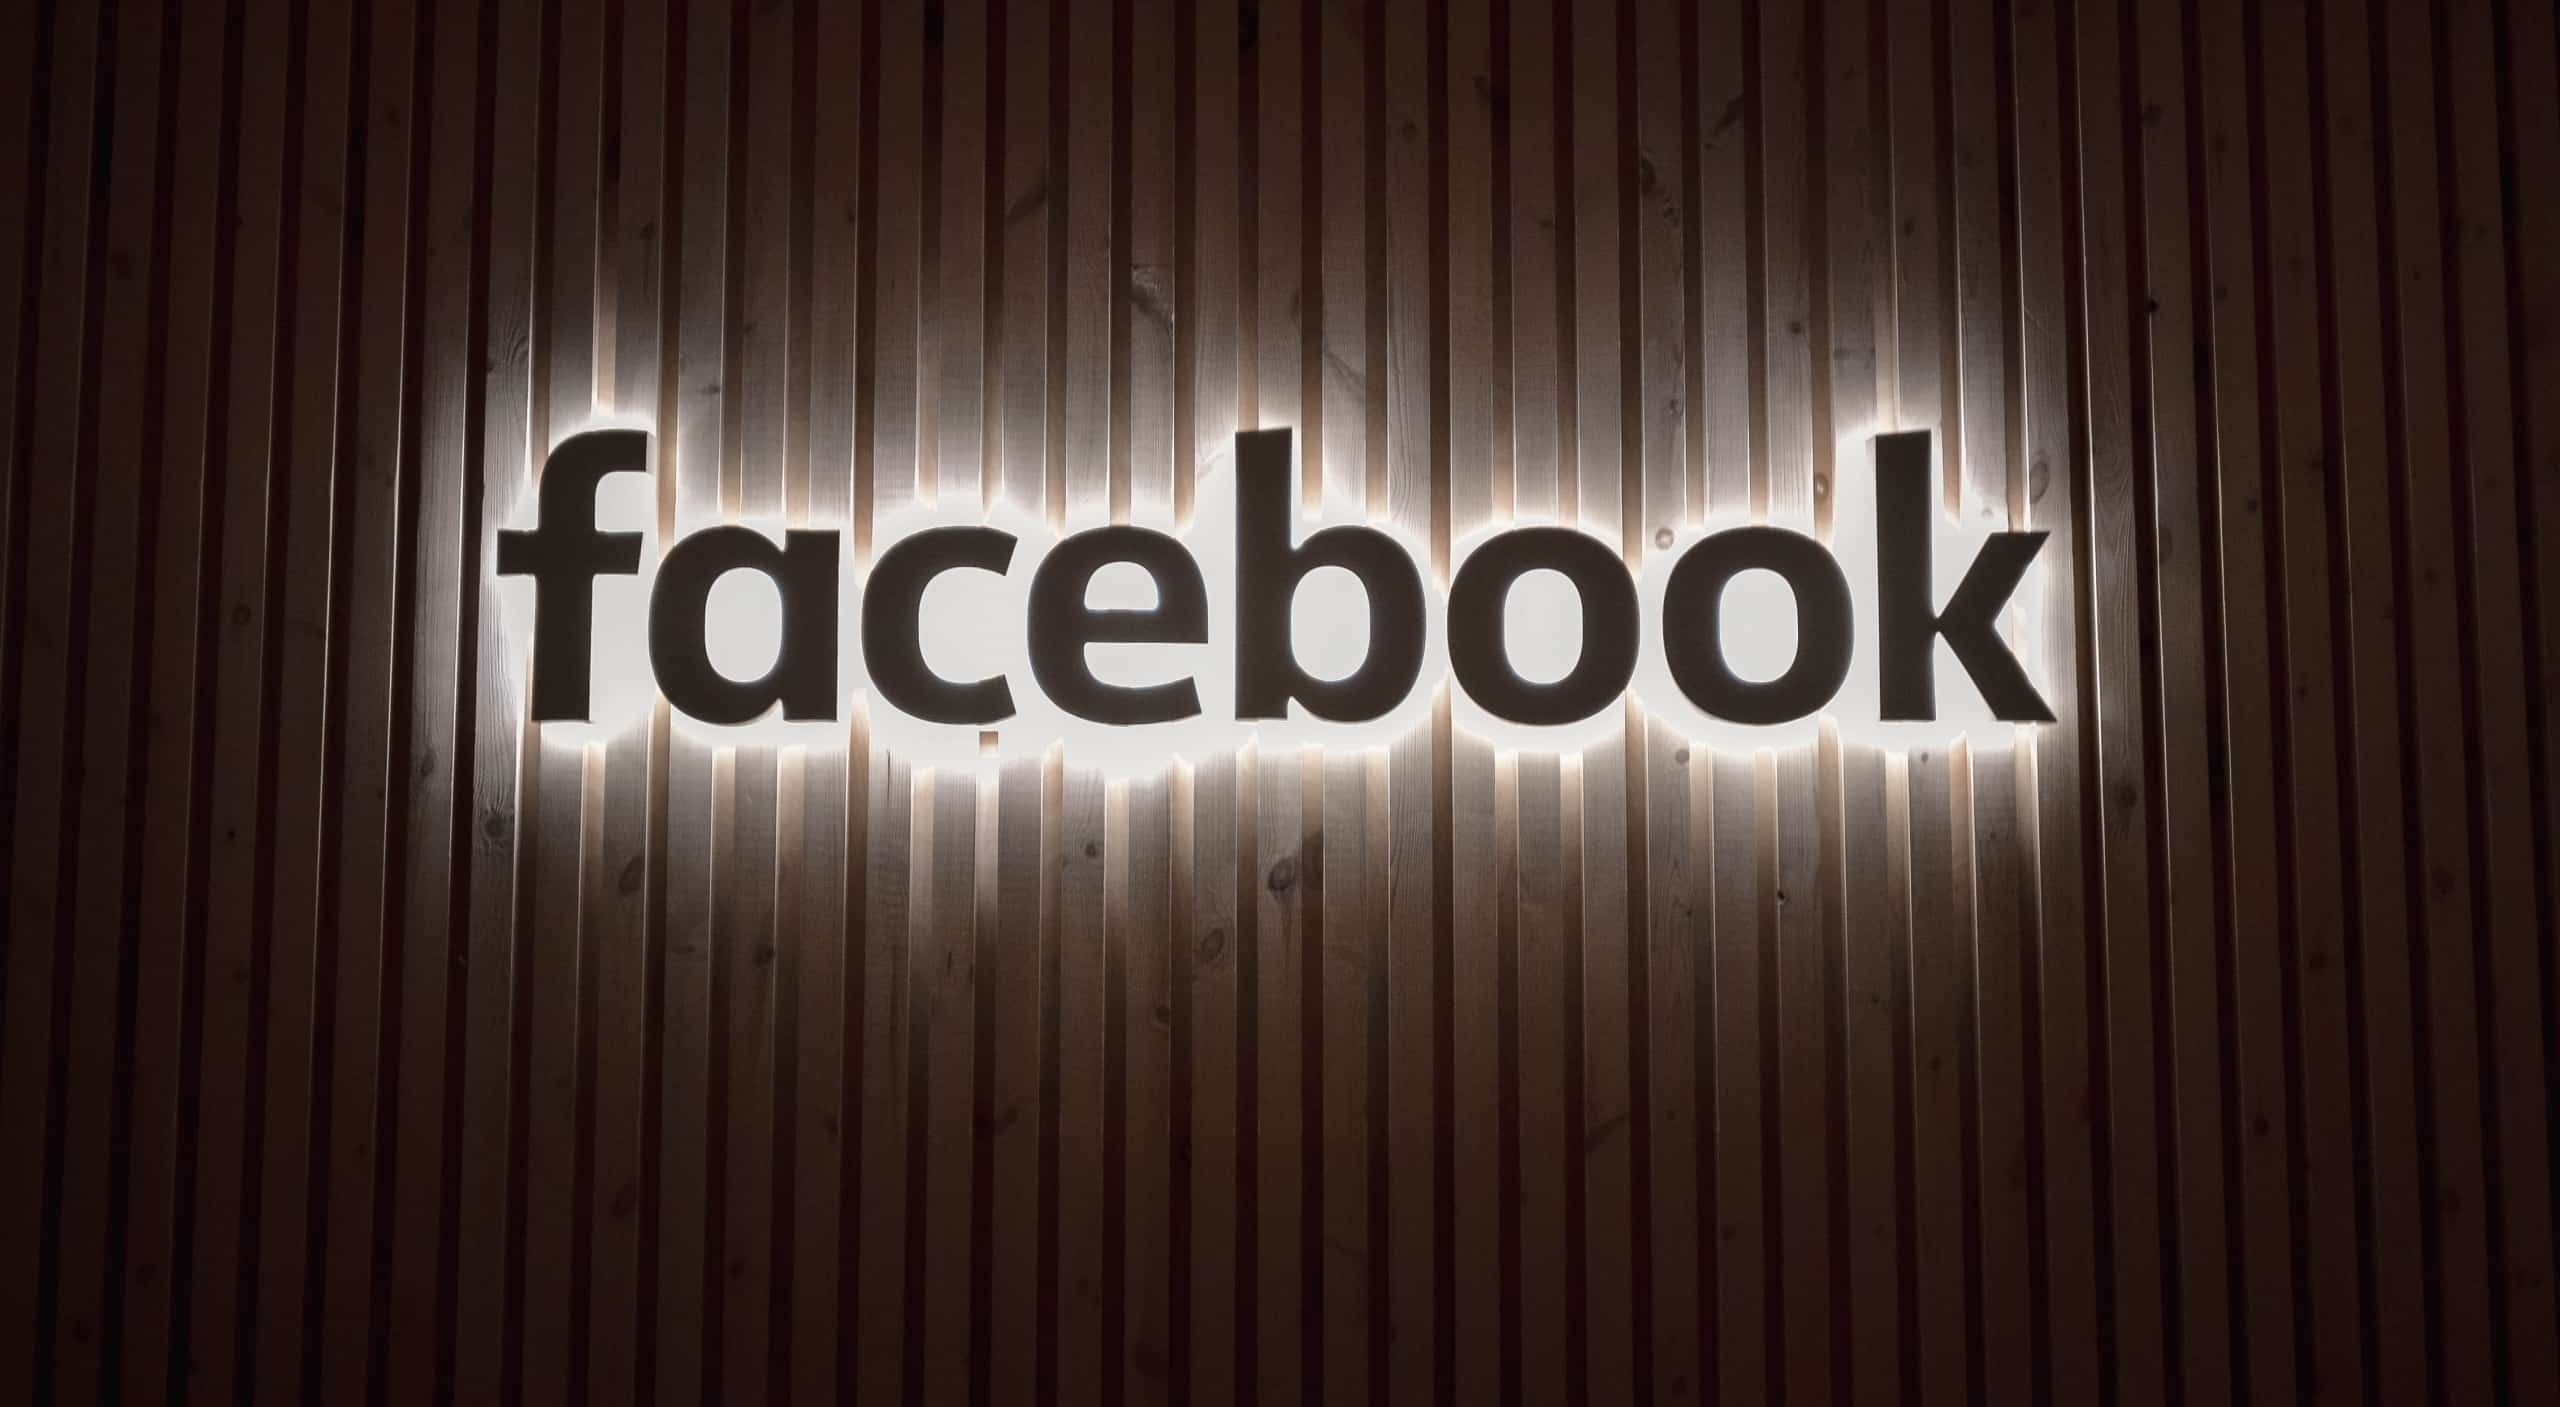 We partner with Facebook.